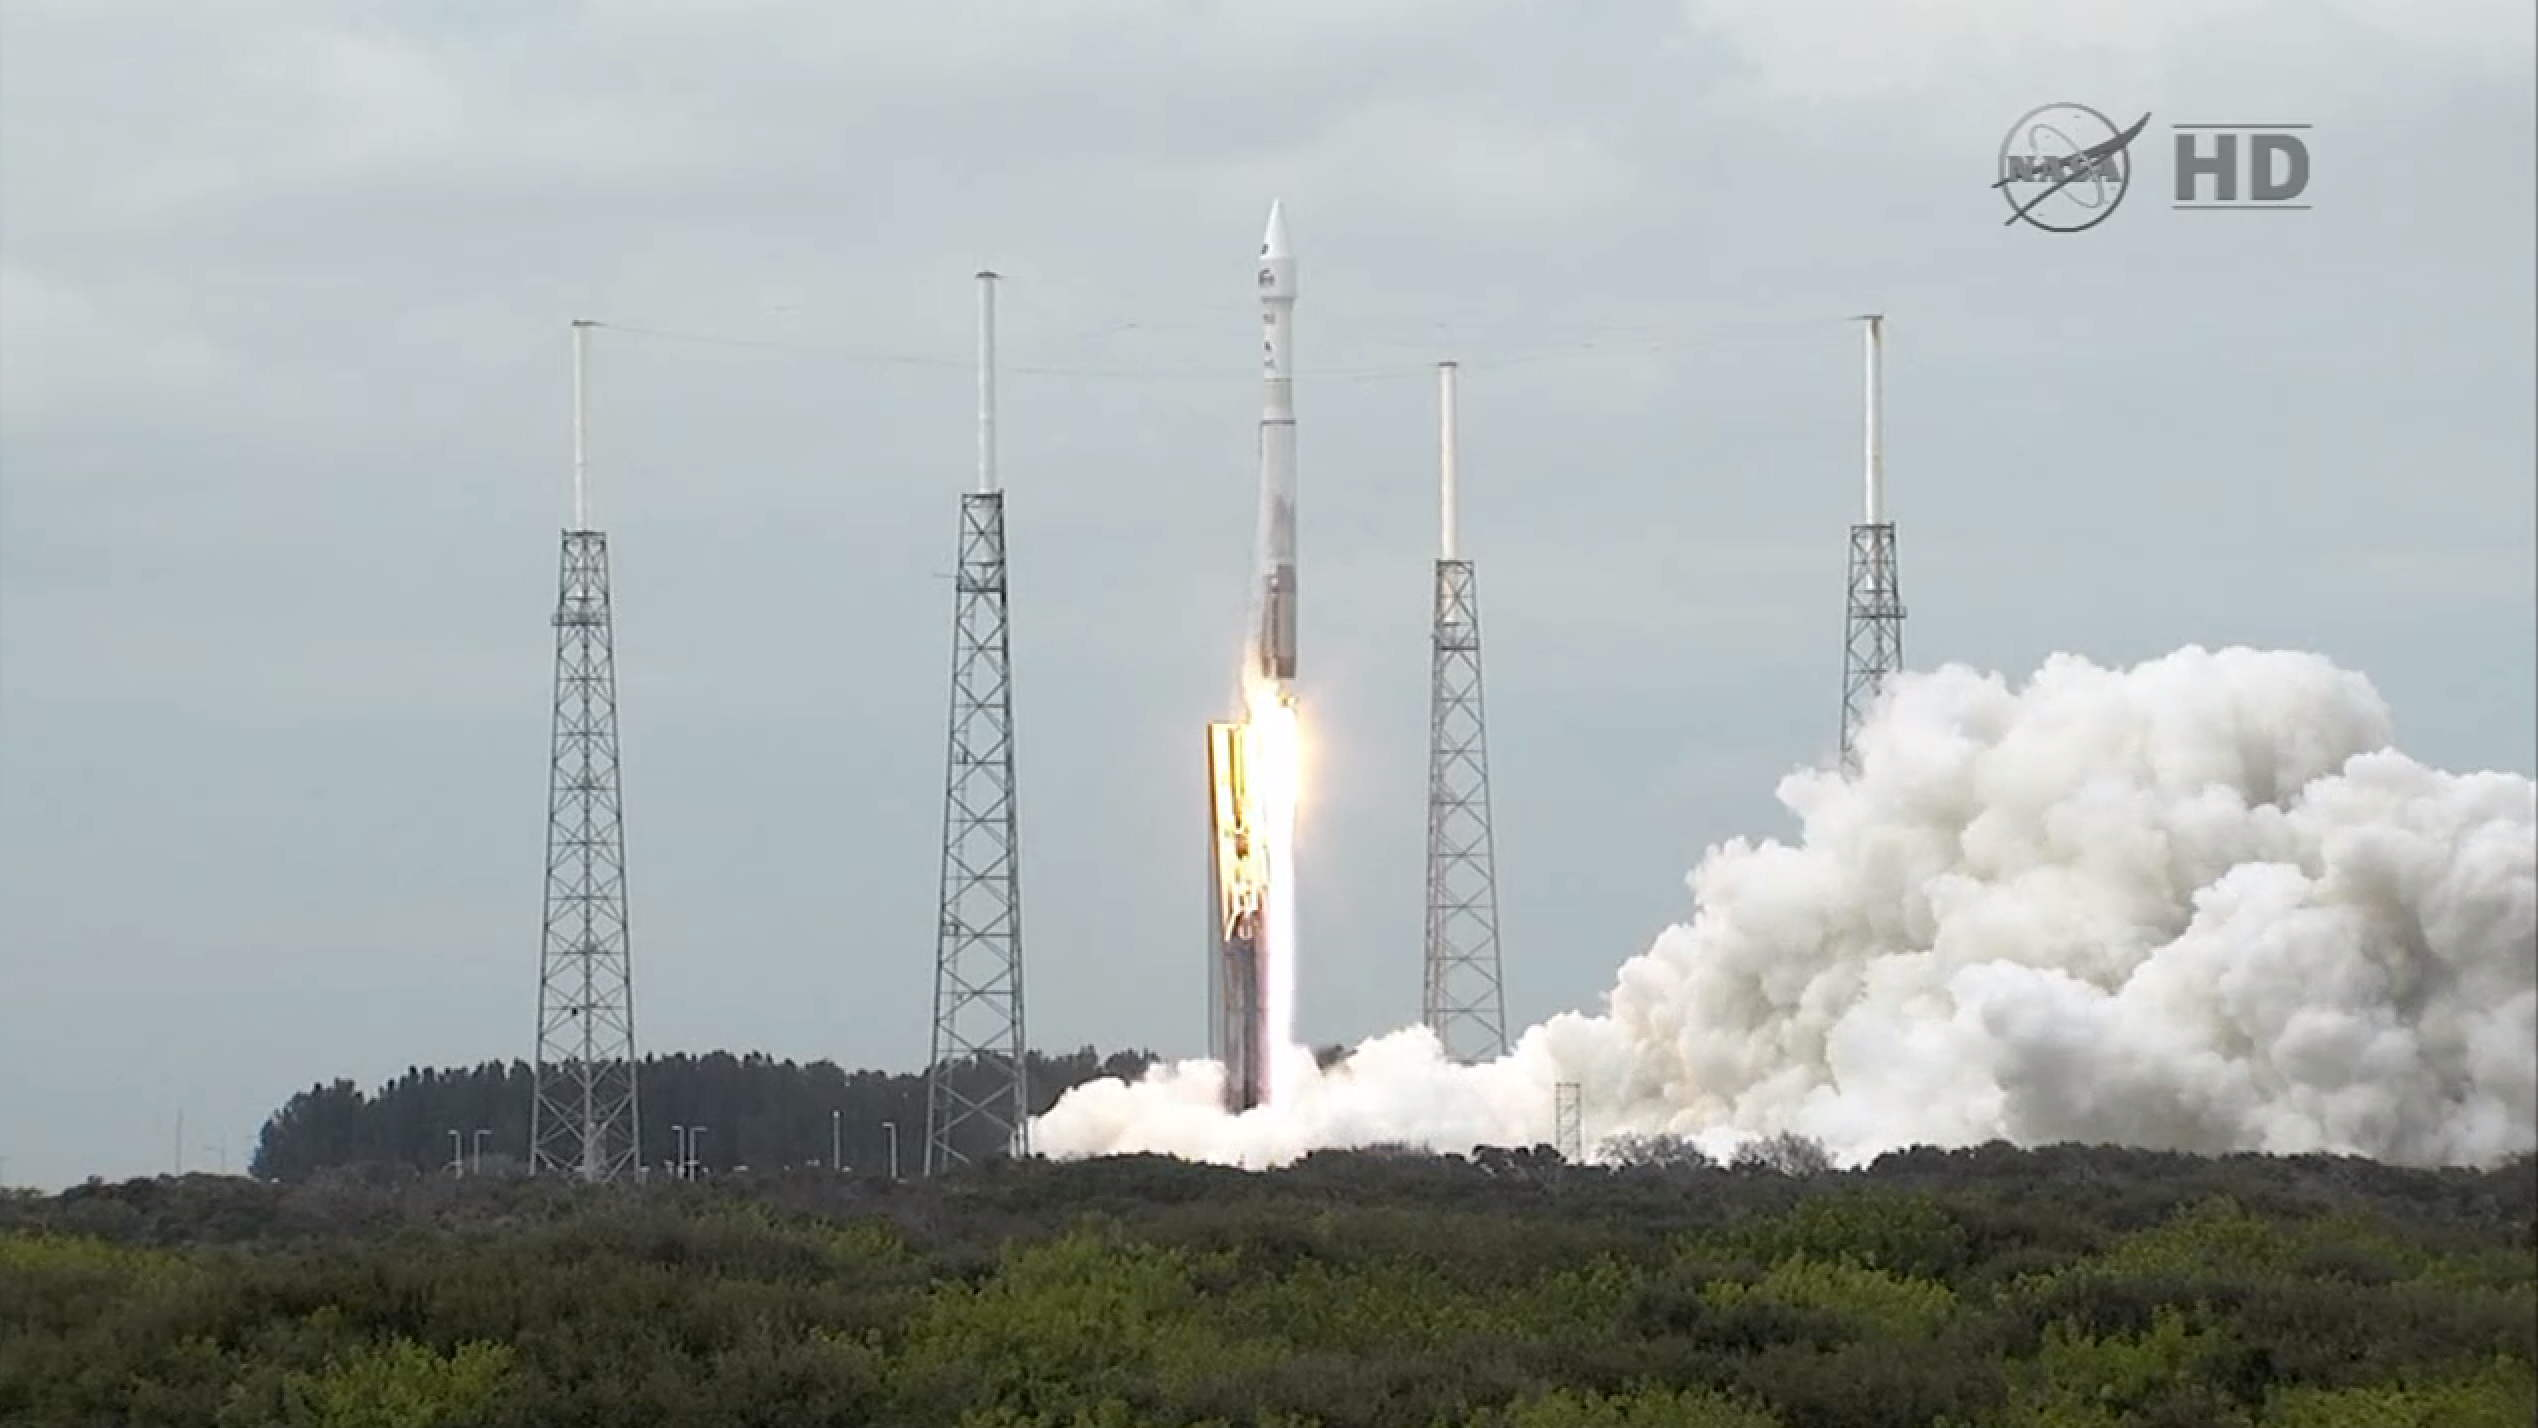 MAVEN Spacecraft Launches With Huge Exhaust Plume